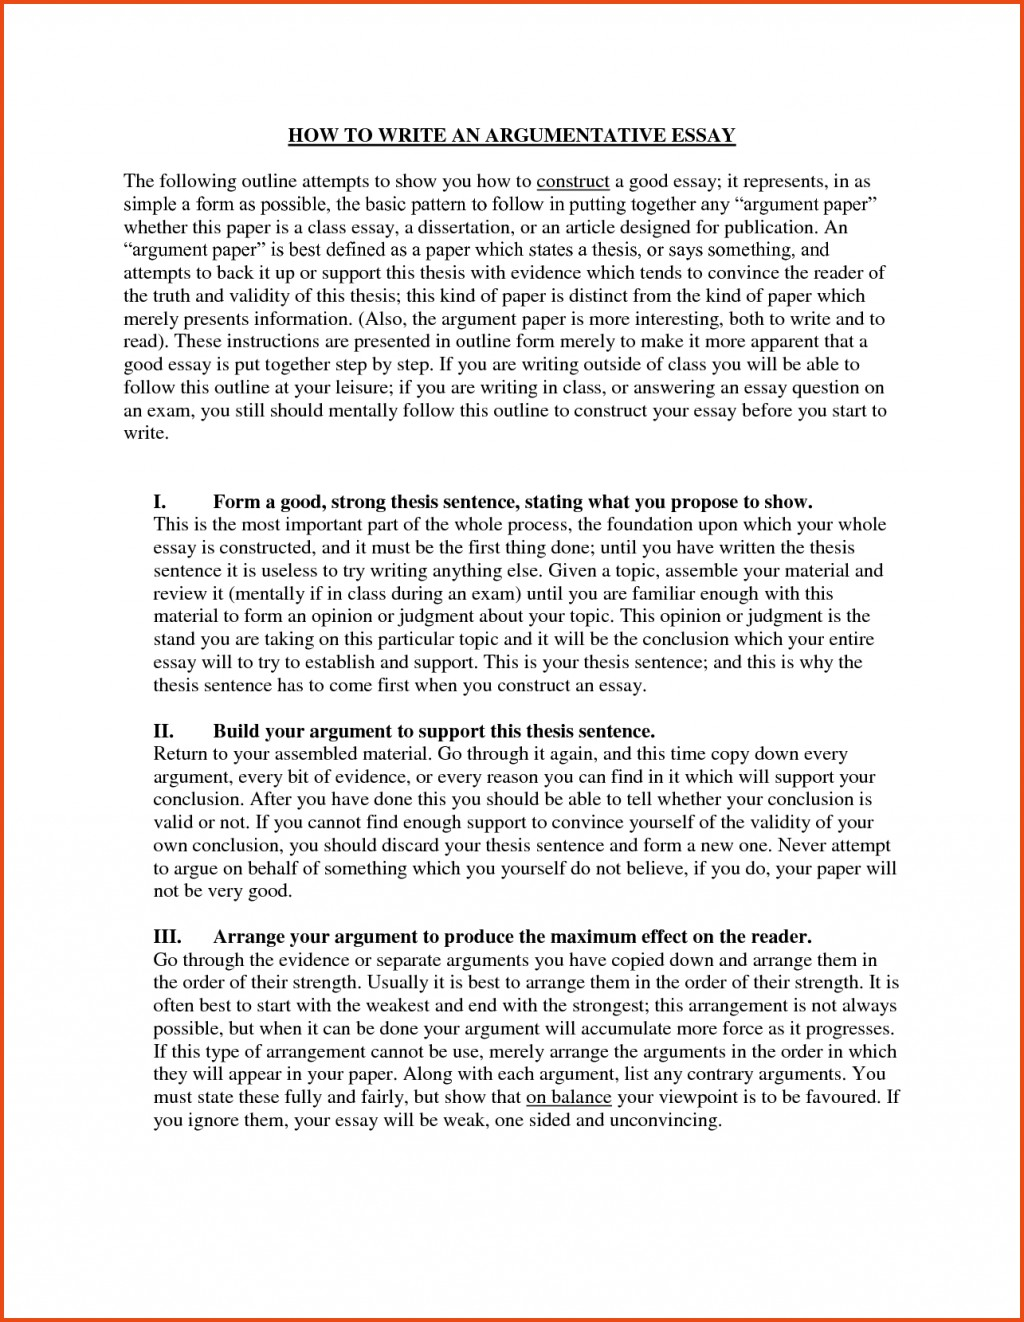 003 Ways To Start An Essay How About Me Help Check Rush Examples Do I Good Way L Expository Academic Application Writing Argumentative Informative Analysis Conclusion Unusual A College Hook Write Introduction Large